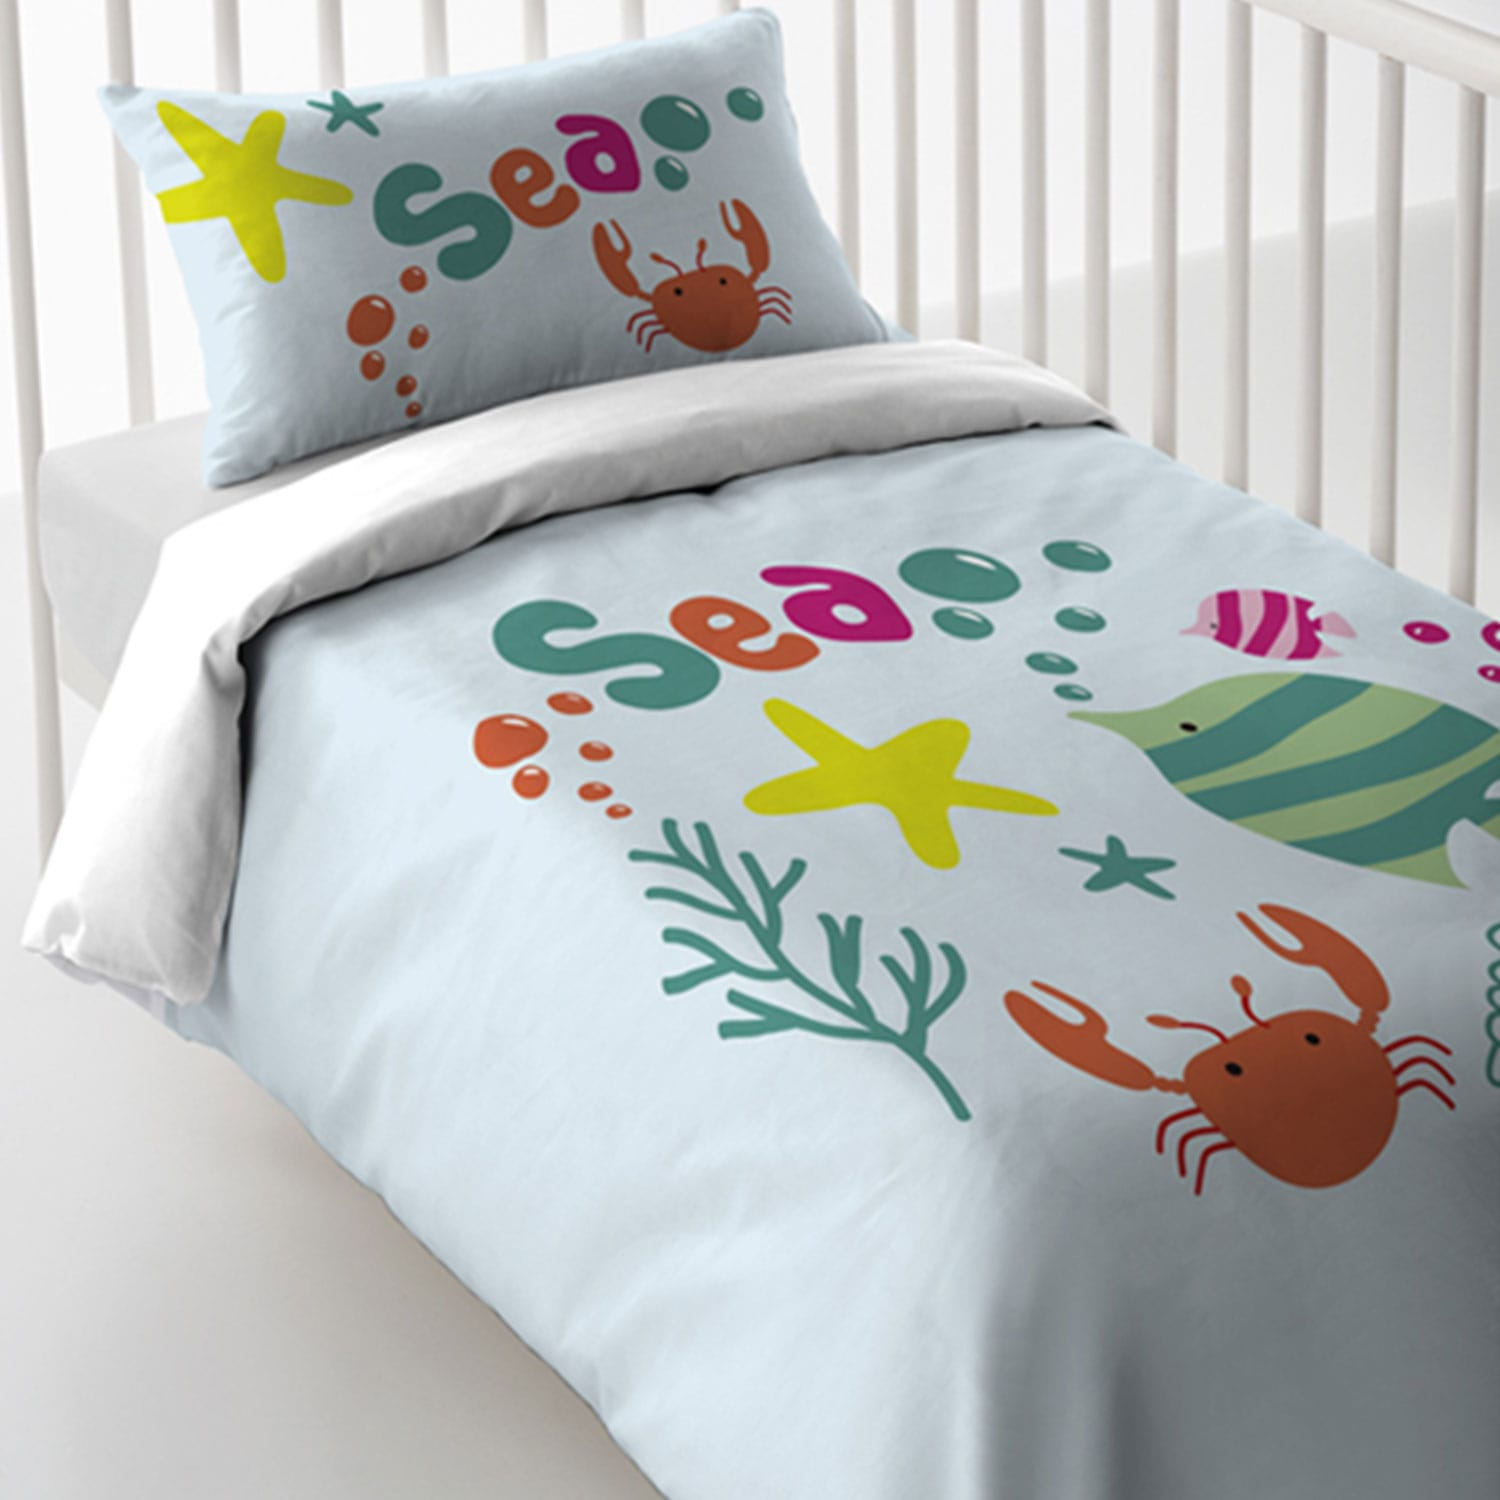 Παπλωματοθήκη Σετ Magic Print Baby 2187 White-Green Vesta 120x60cm